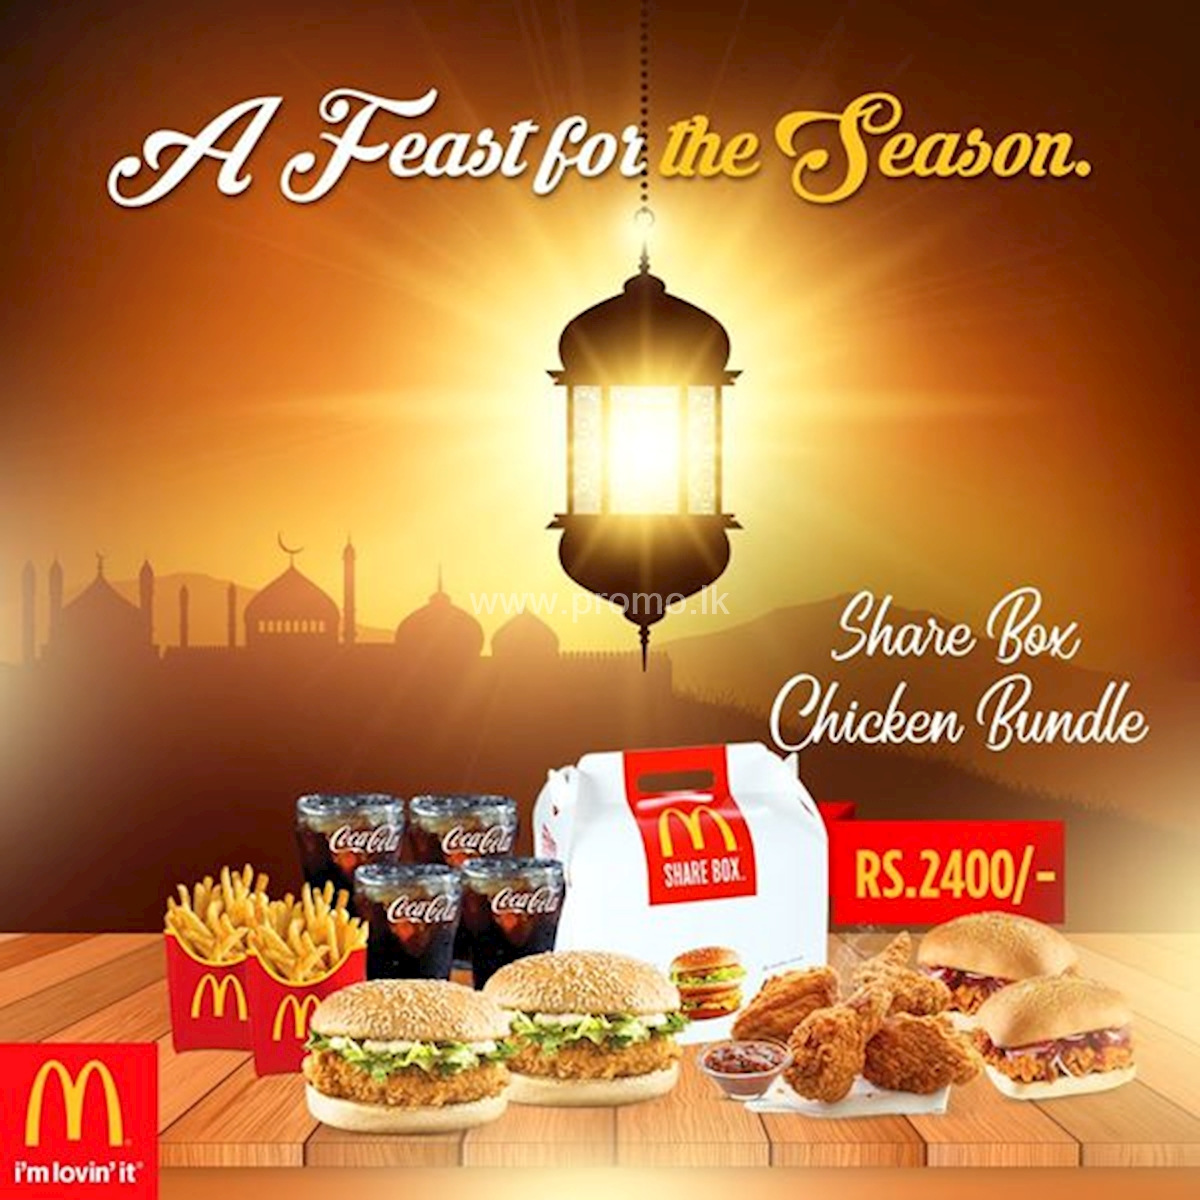 A Feast for the Season from McDonald's